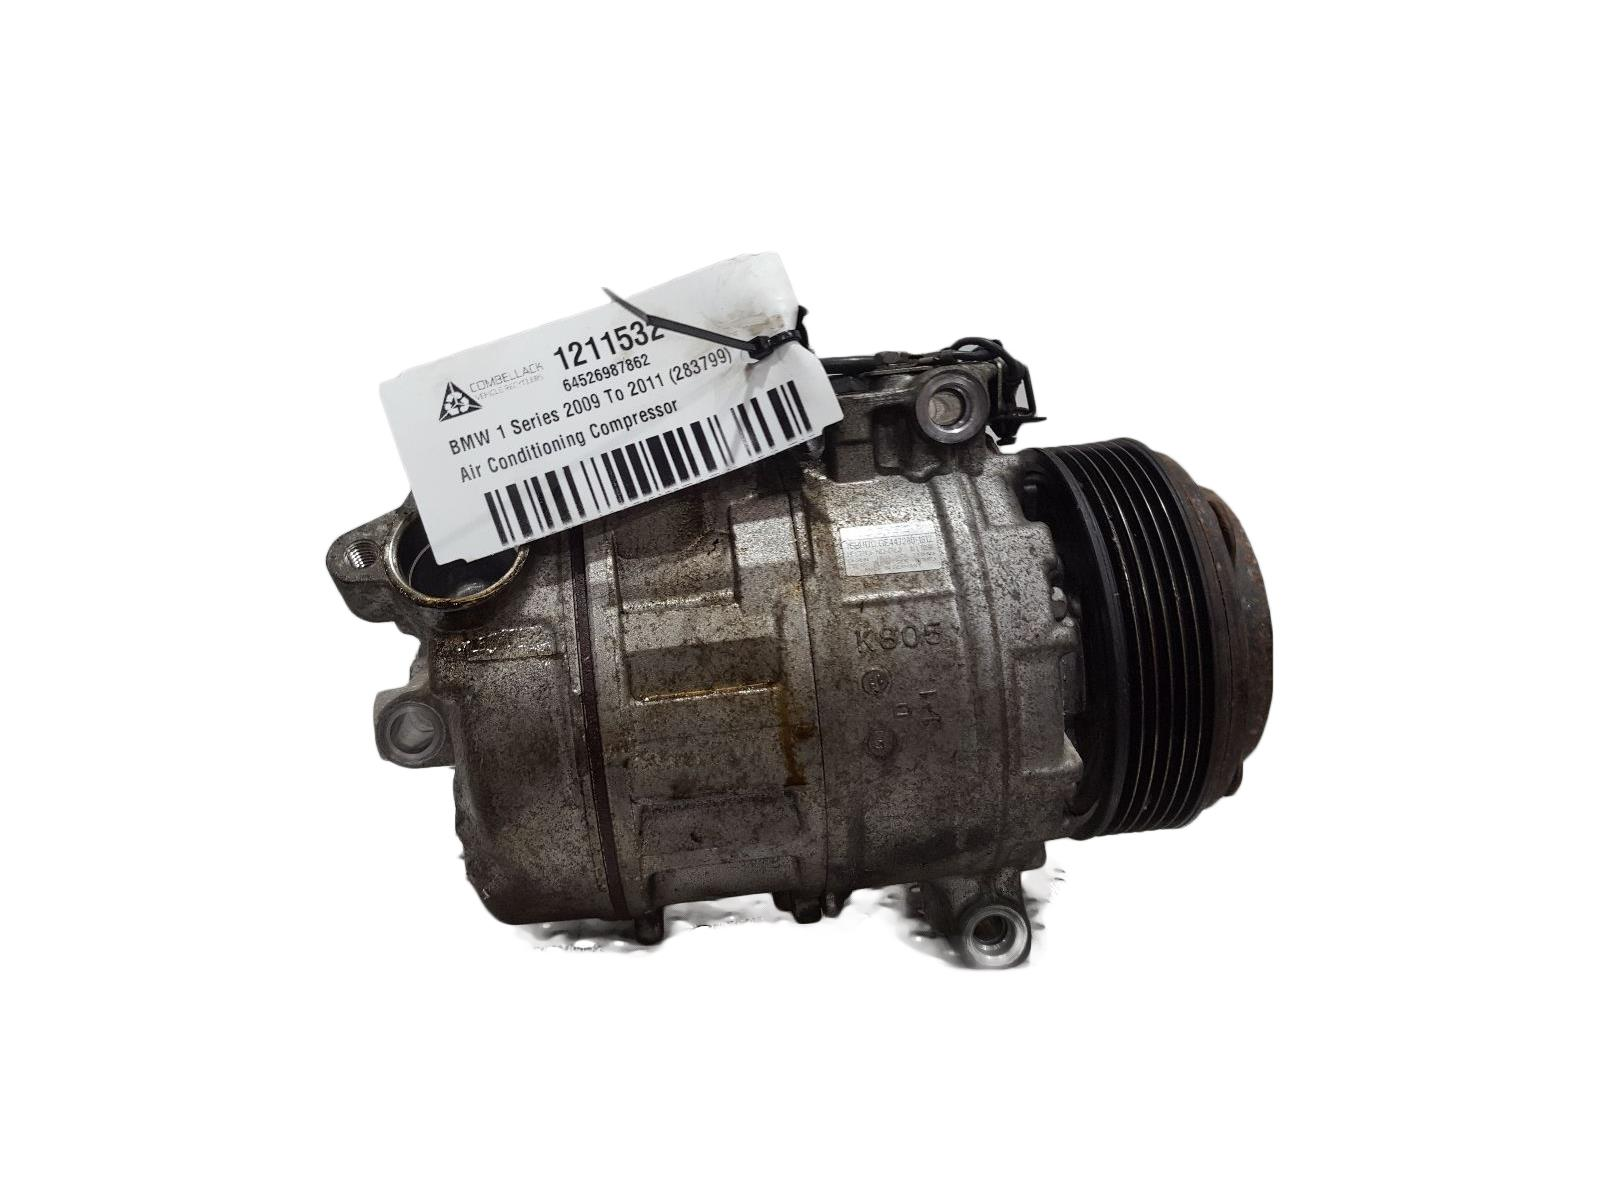 BMW 1 Series 2009 To 2011 3.0 Air Conditioning Pump